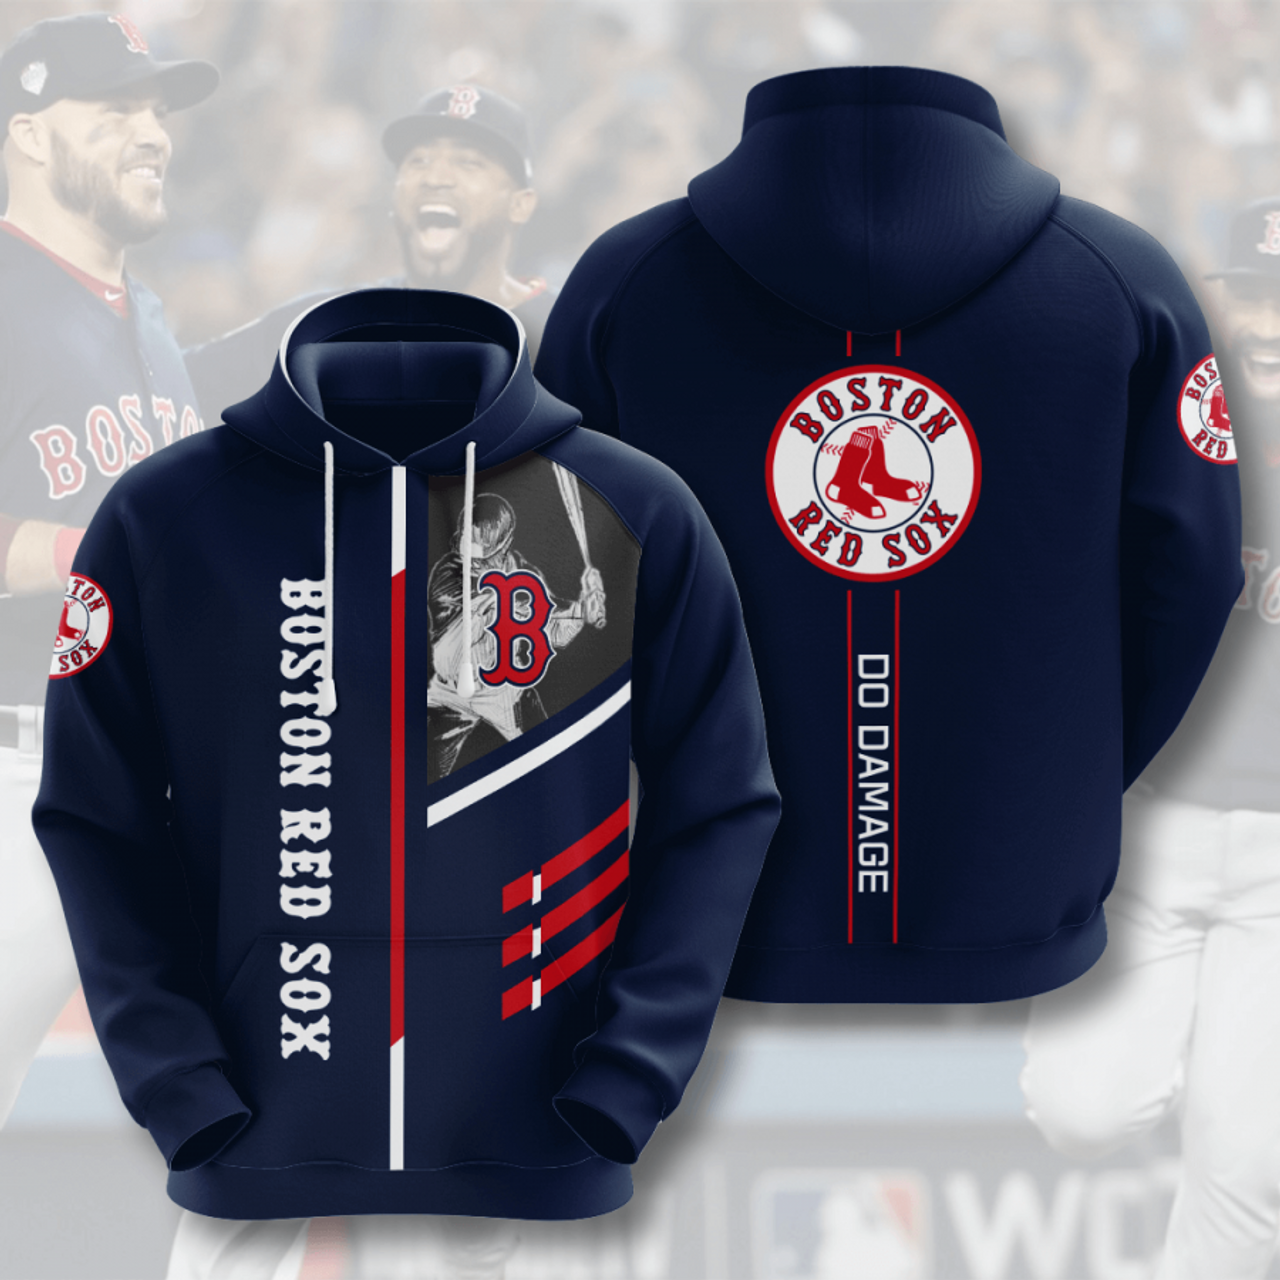 **(OFFICIAL-M.L.B.BOSTON-REDSOX-TEAM-PULLOVER-HOODIES & REDSOXS-DO-DAMAGE/CUSTOM-3D-GRAPHIC-PRINTED-ALL-OVER-DOUBLE-SIDED-DESIGN/OFFICIAL-REDSOXS-TEAM-COLORS & CLASSIC-OFFICIAL-REDSOXS-3D-LOGOS/WARM-PREMIUM-PULLOVER-GAME-DAY-TEAM-HOODIES)**